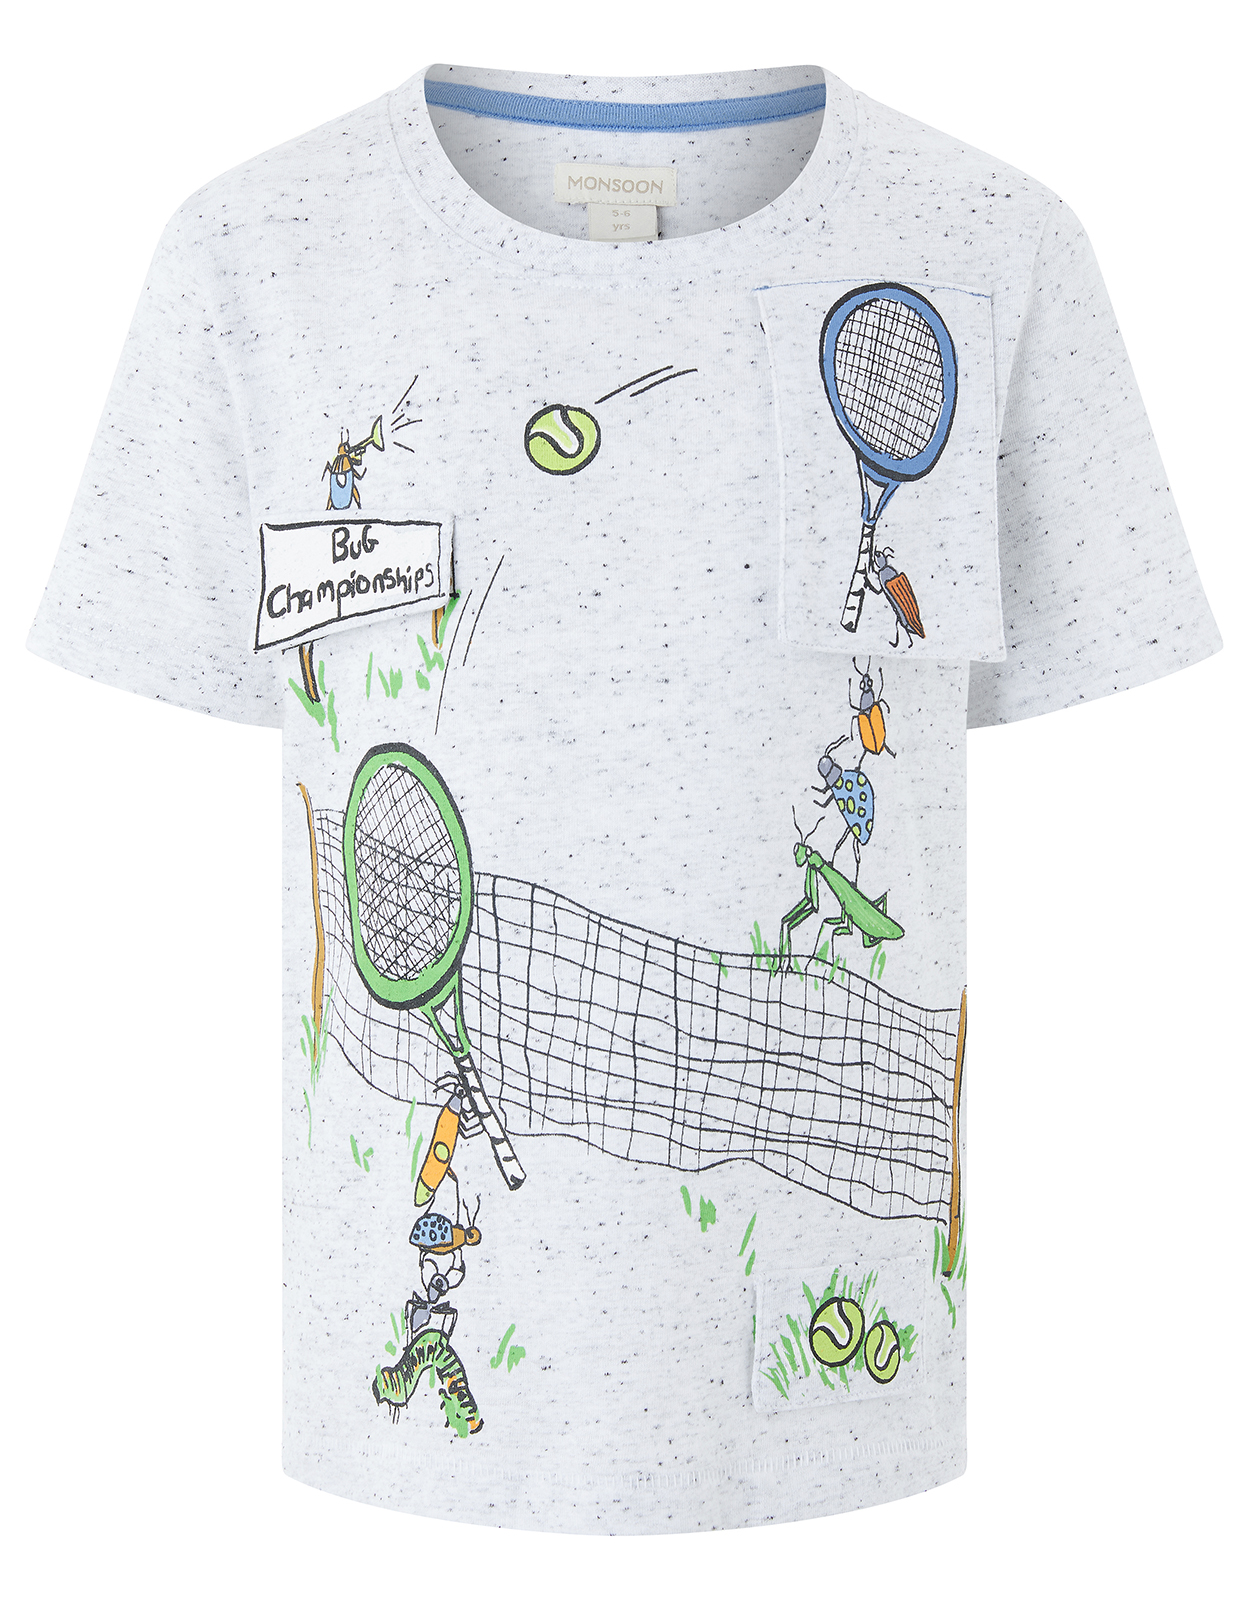 Monsoon Bug Championship Tee